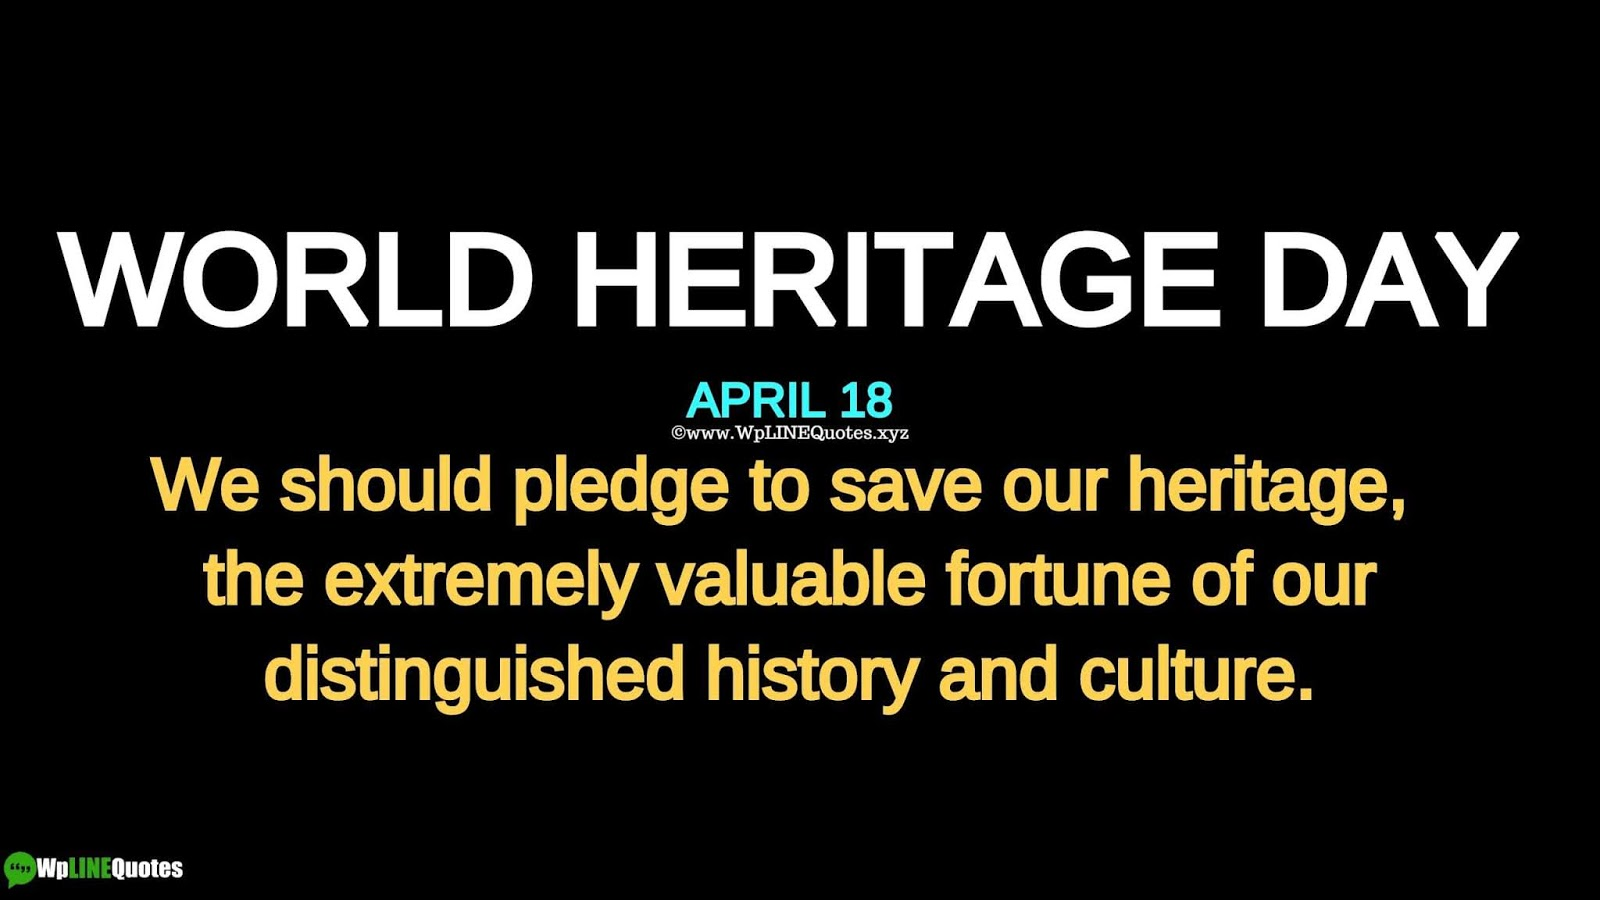 World Heritage Day Quotes, Wishes, Messages, Speech, Theme, History, Facts, Images, Poster, Drawing